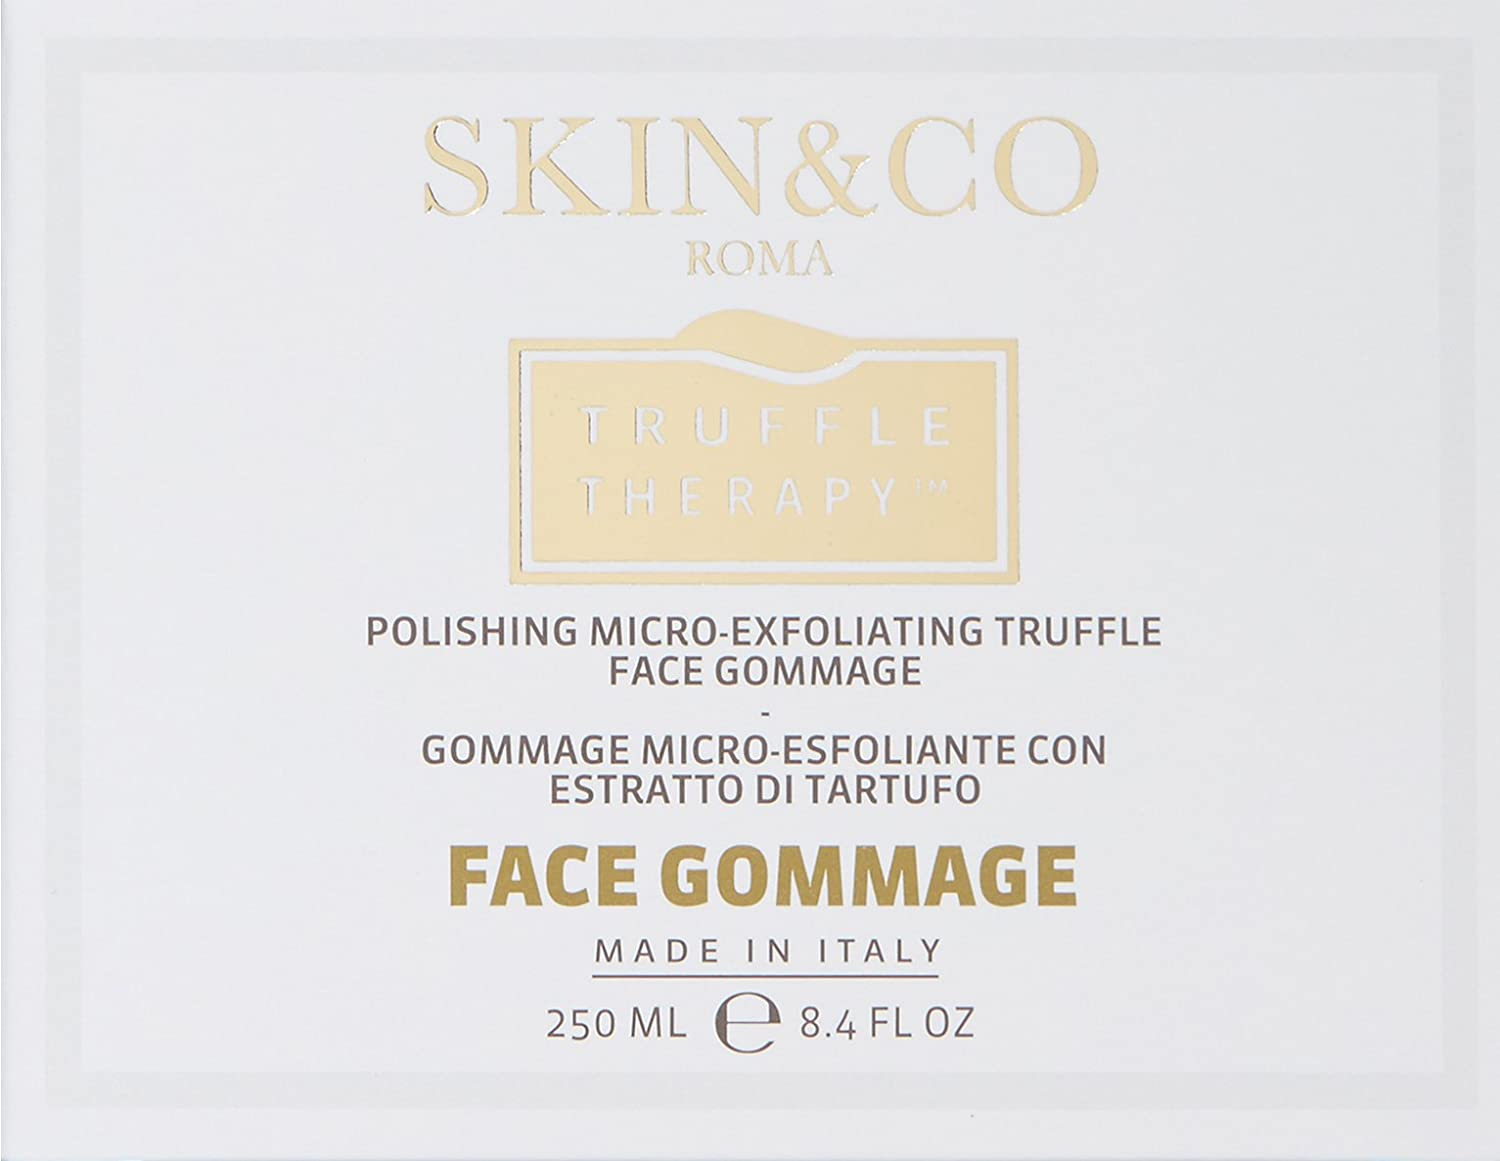 SKIN CO Truffle Therapy Face Gommage, 5.07 FL OZ.